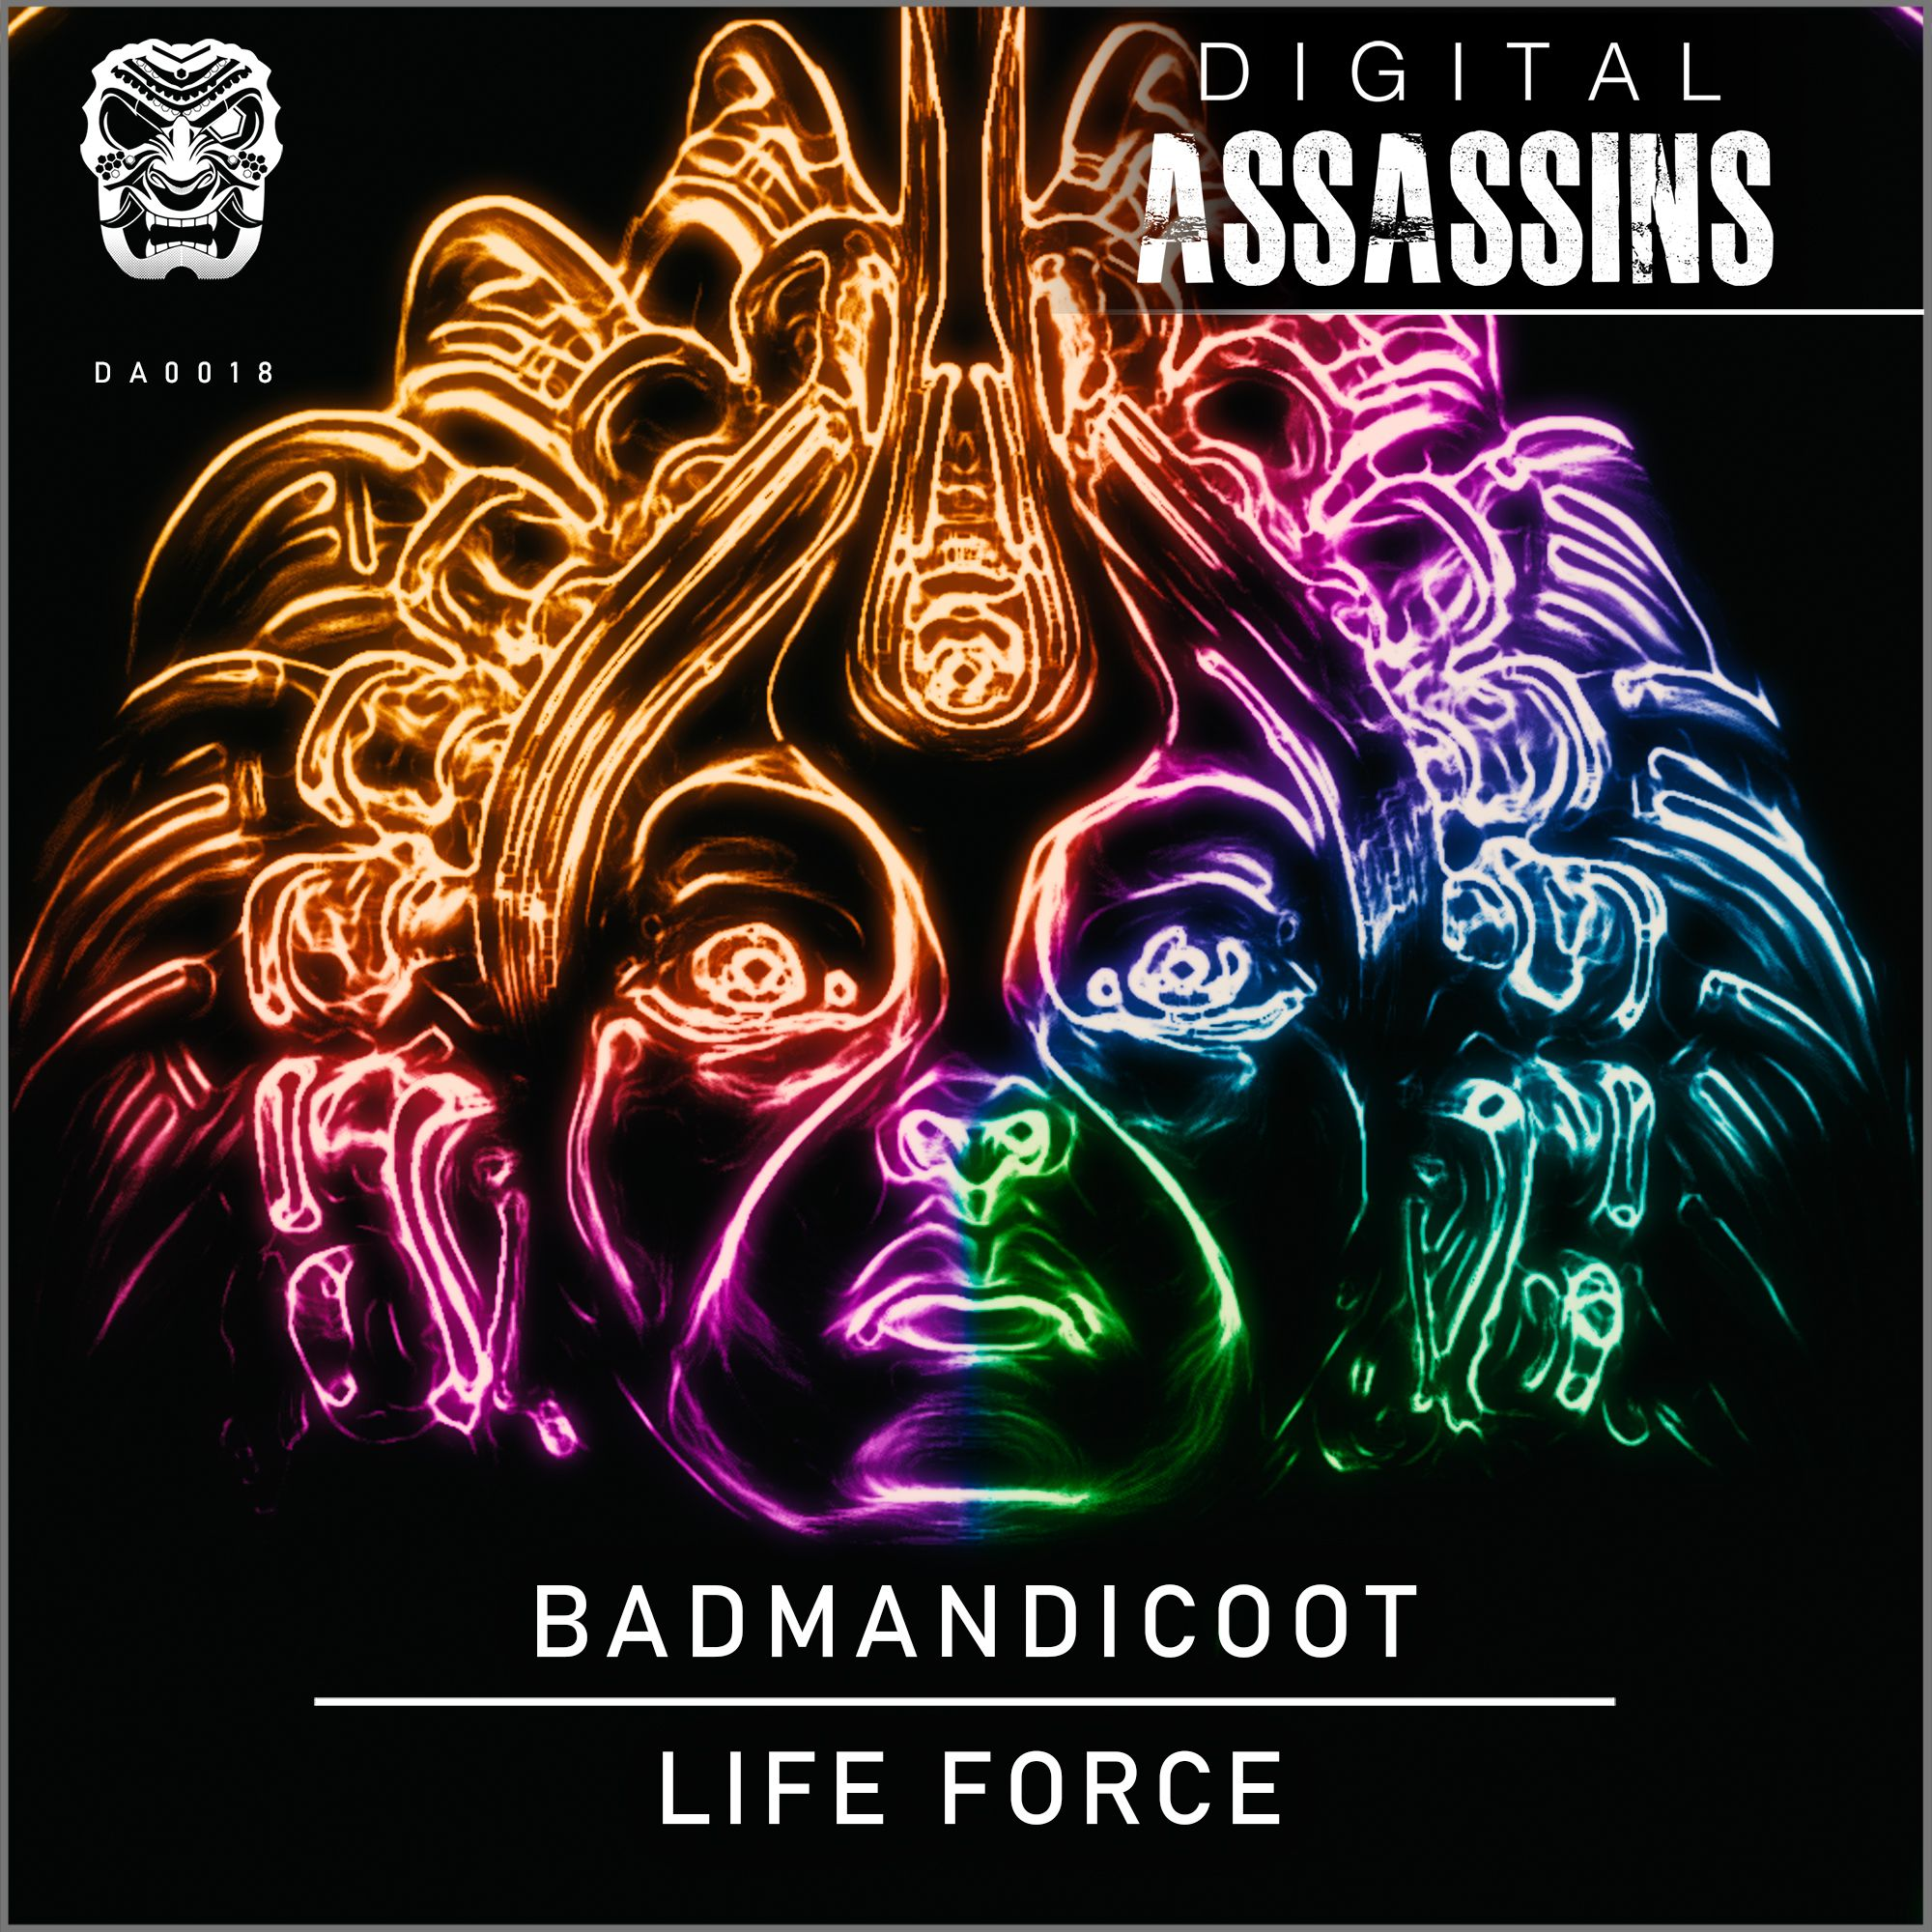 Badmandicoot - Life Force